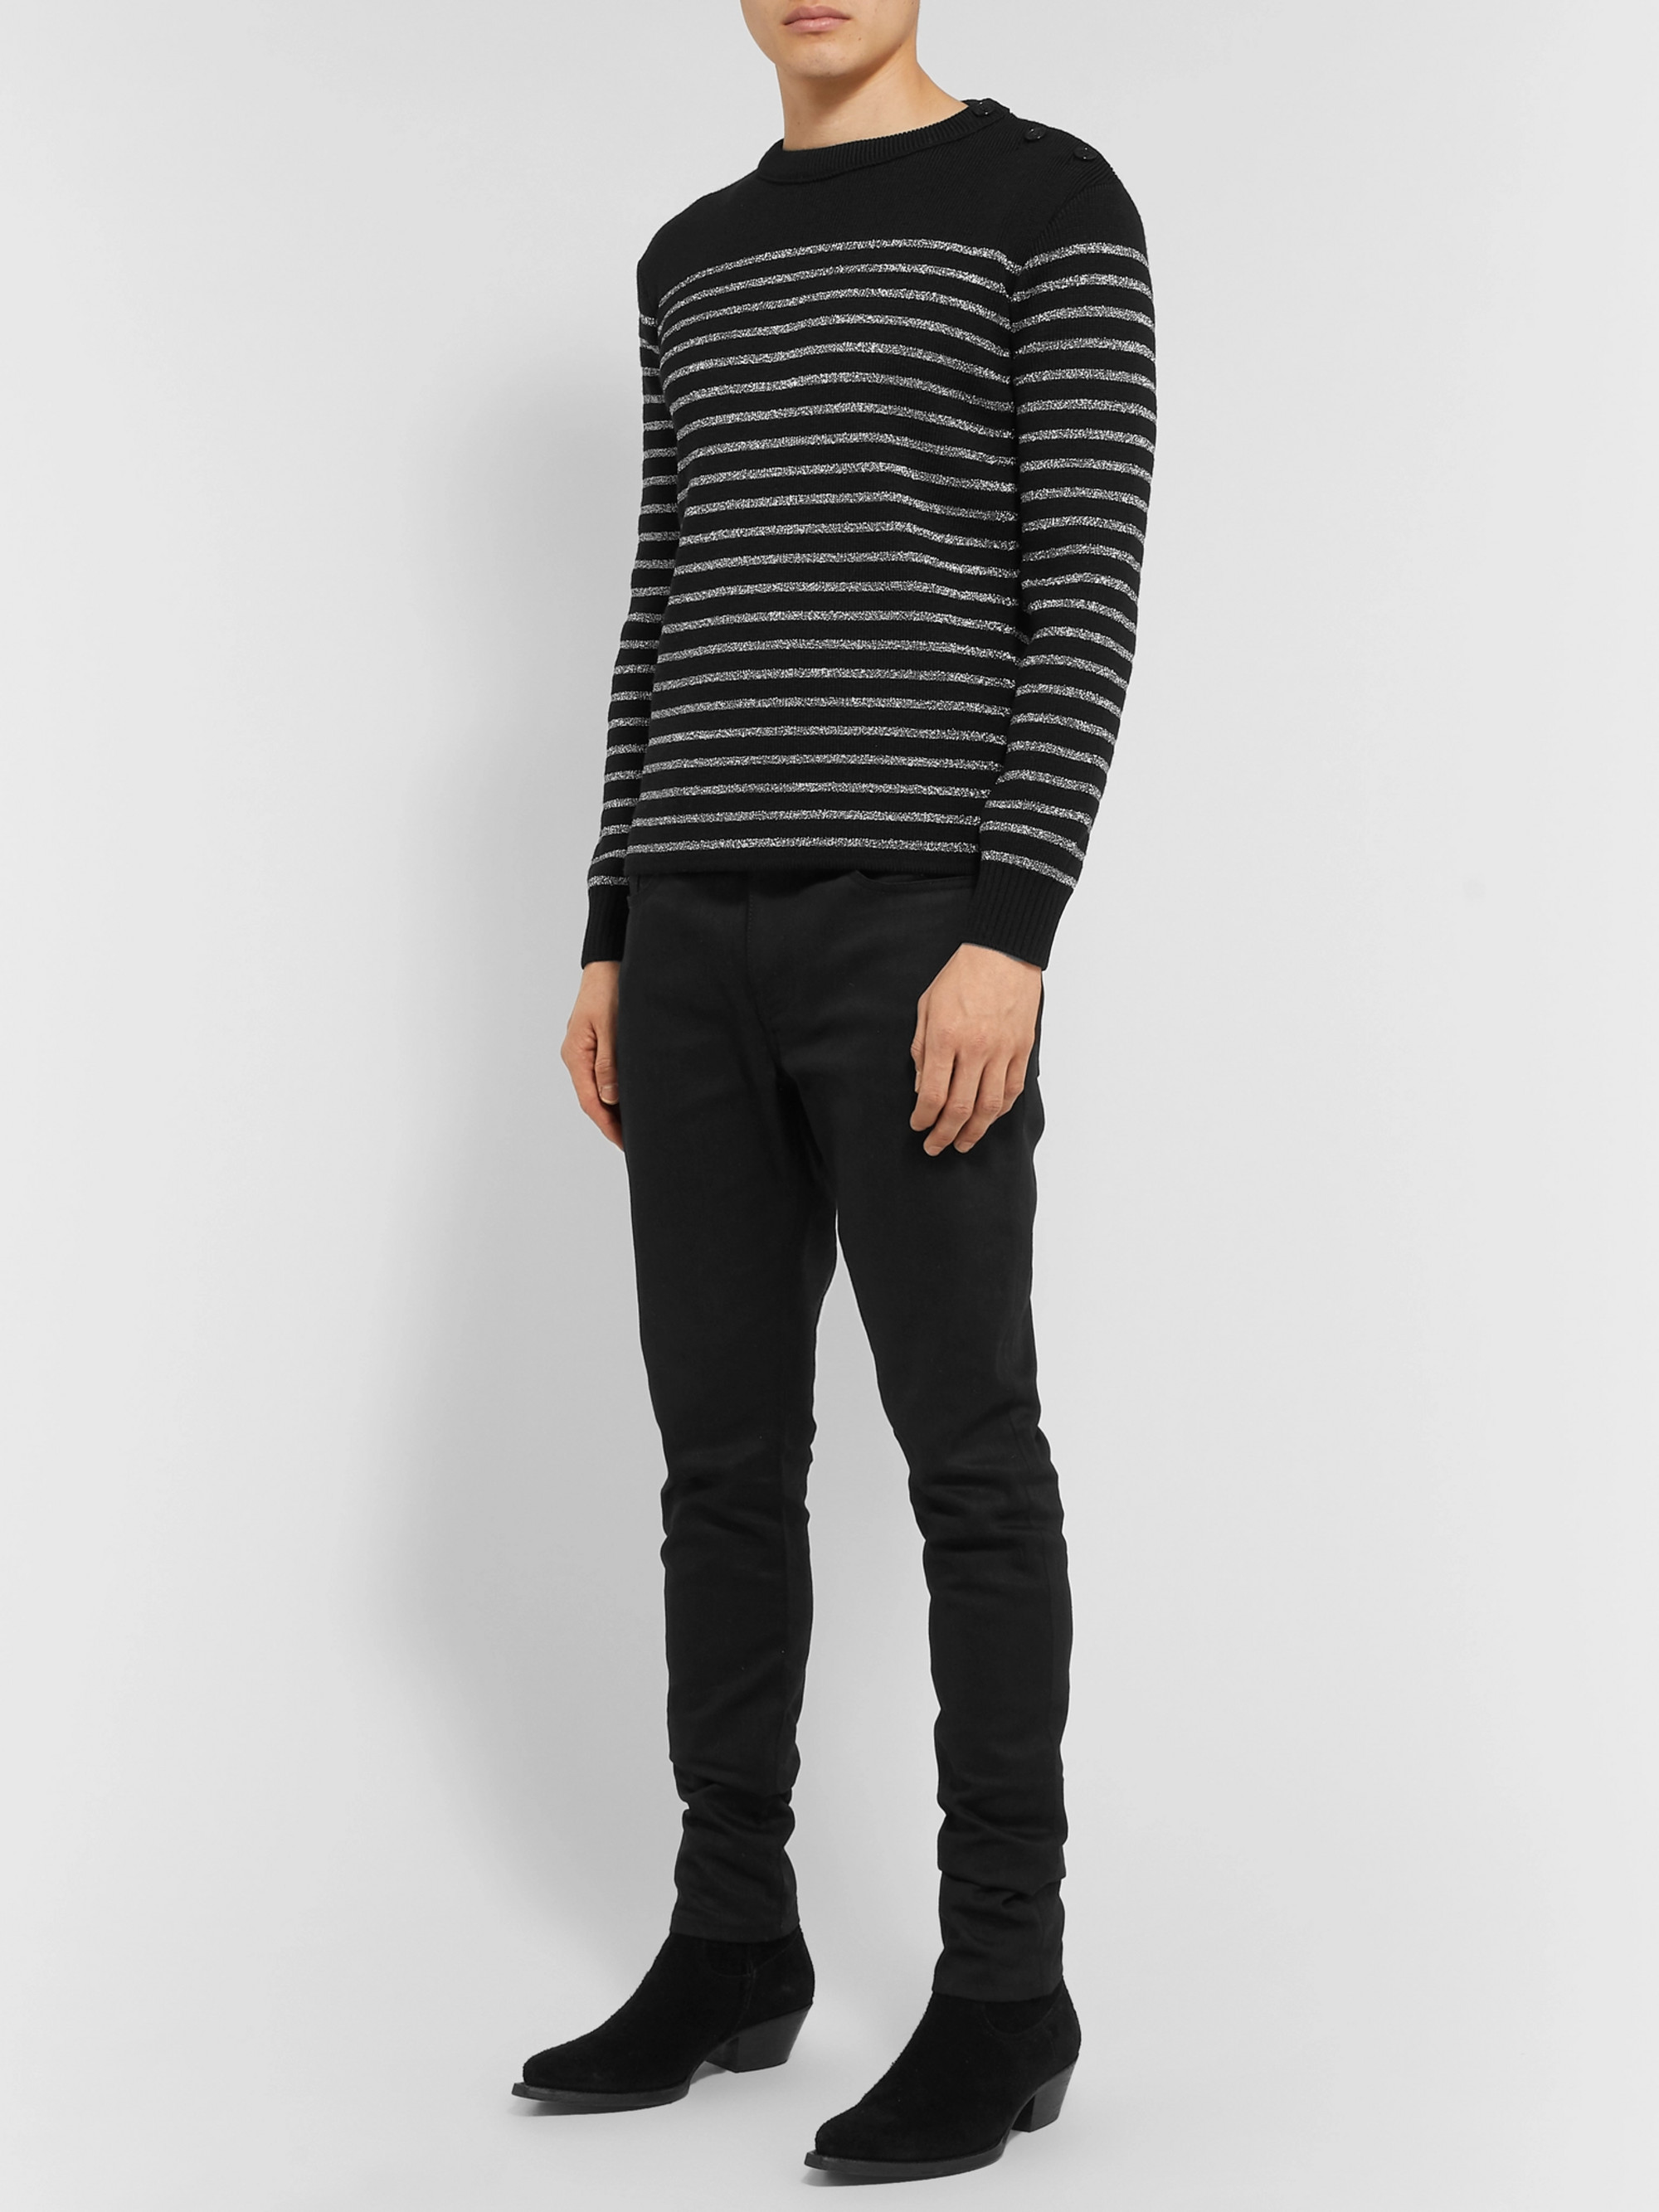 SAINT LAURENT Metallic Striped Knitted Sweater